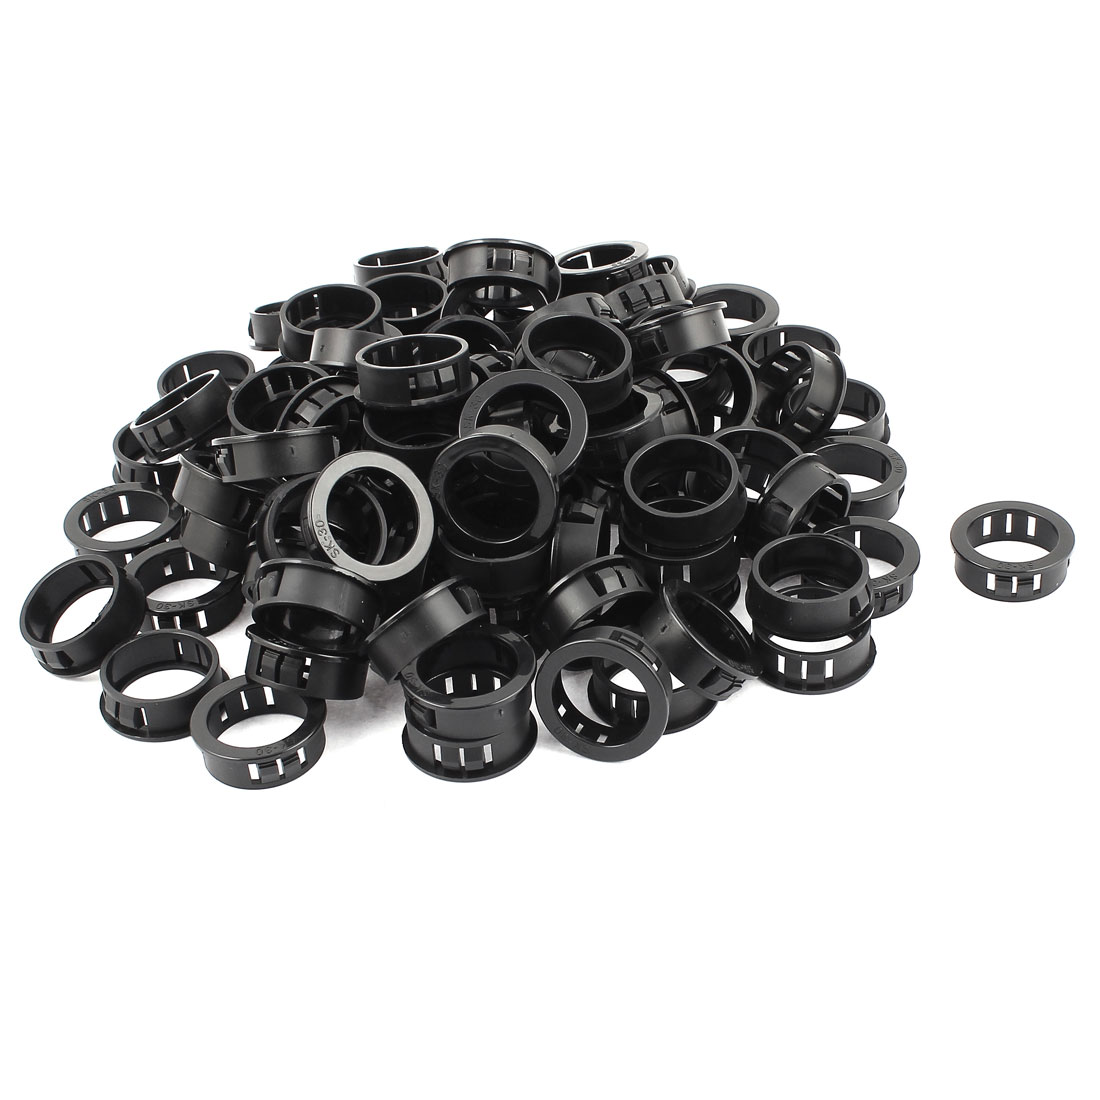 Unique Bargains 30mm Black Plastic Cable Hose Snap Locking Bushing Protective Grommet 100 Pcs